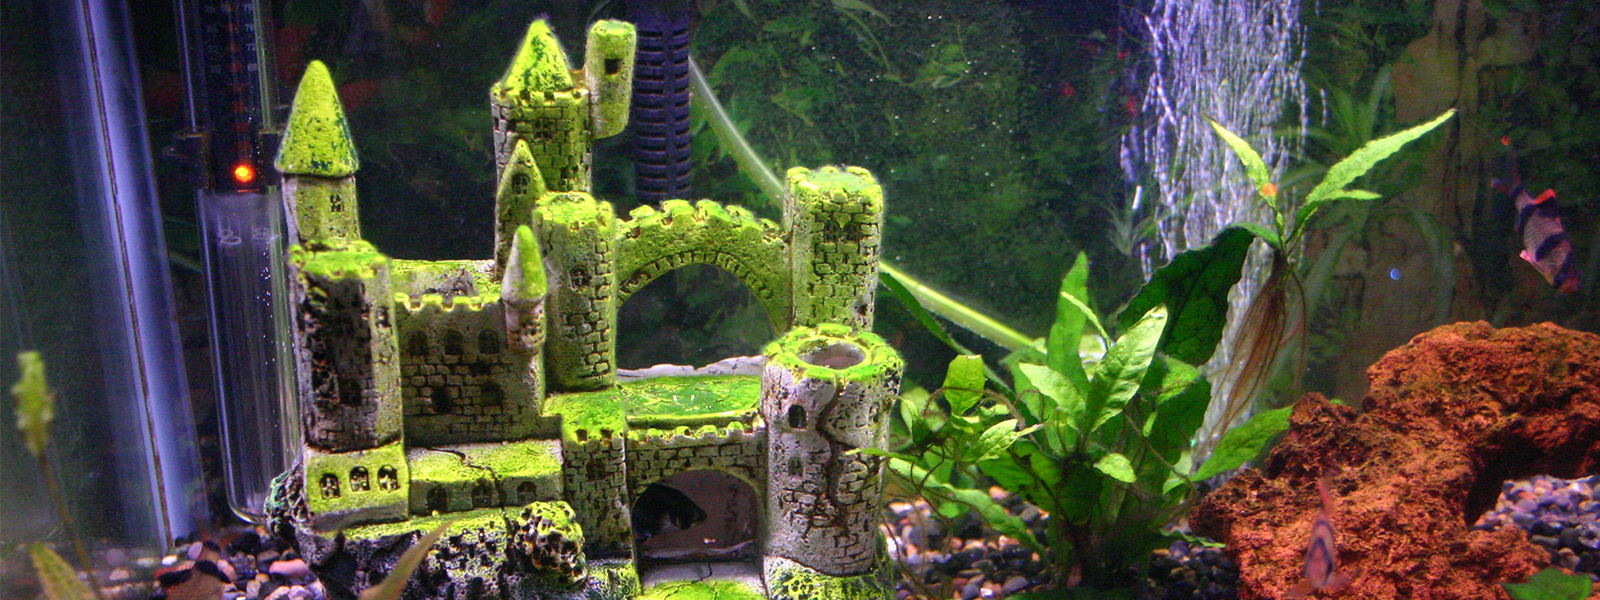 comment décorer son aquarium